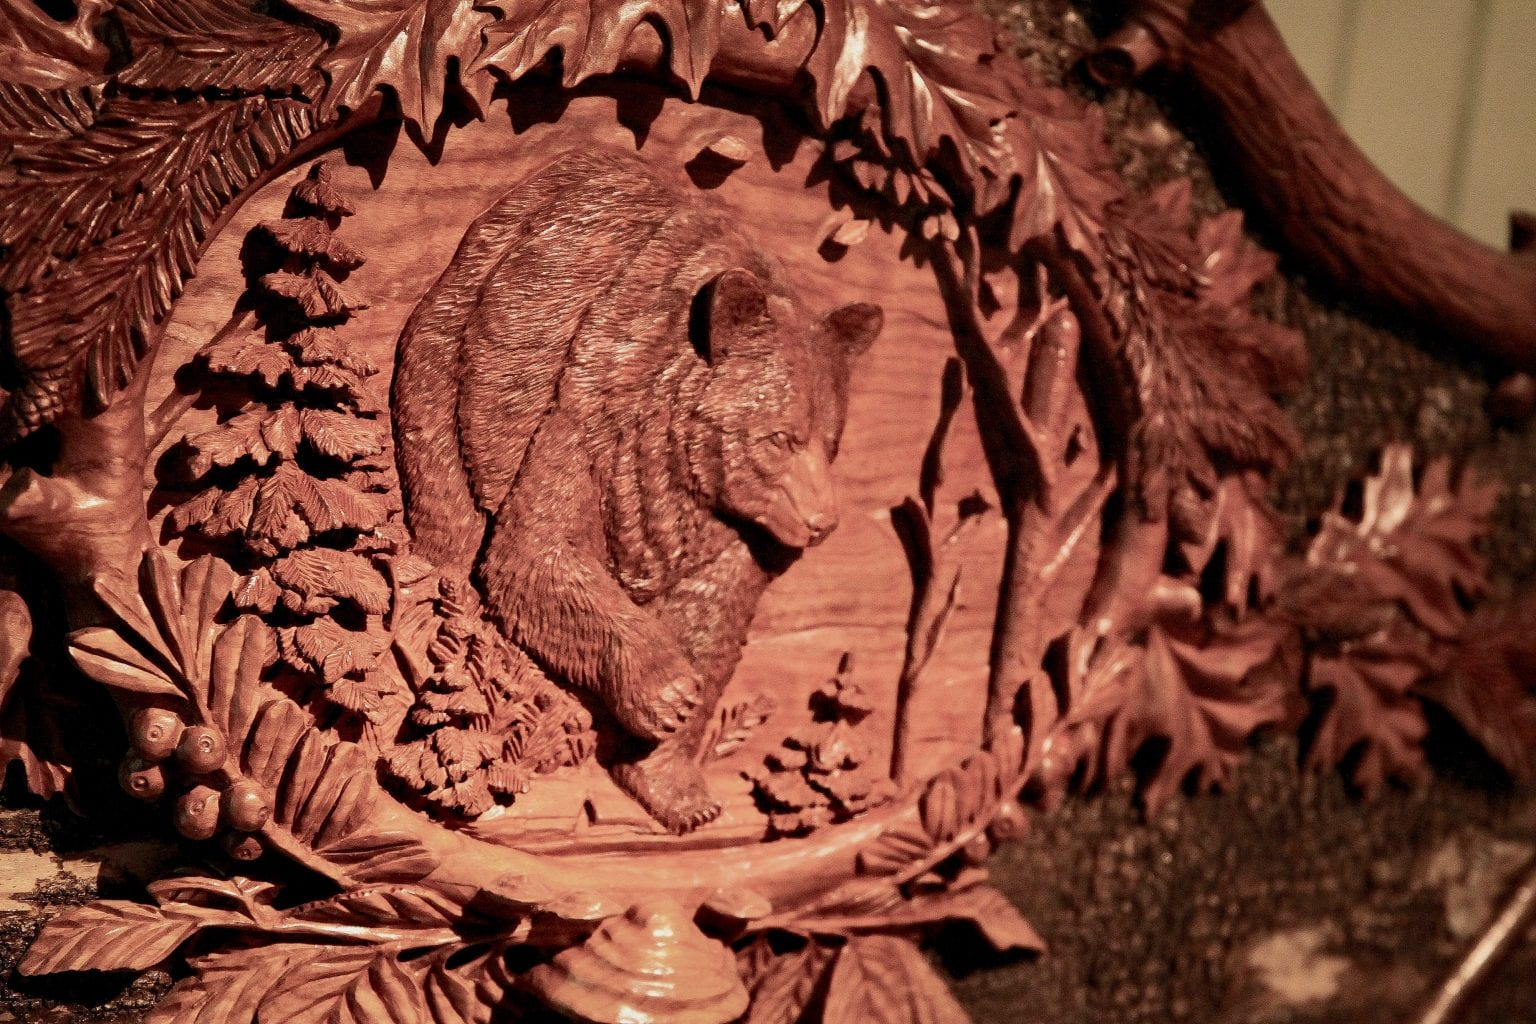 Ales the woodcarver teddy bear guardians another wave